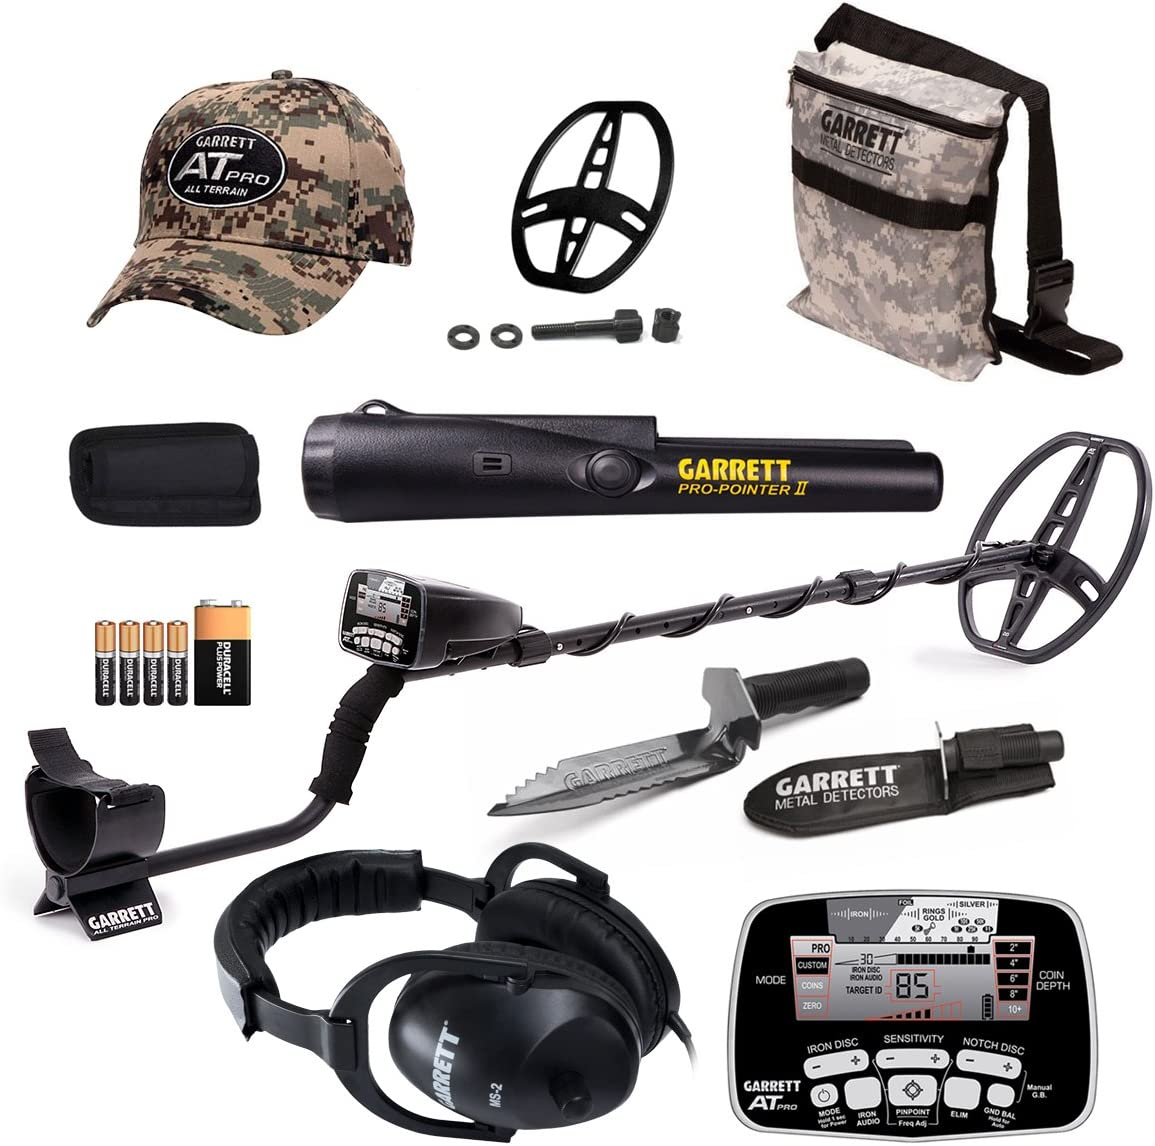 Garrett at Pro Waterproof Metal Detector with ProPointer II and Bonus Pack